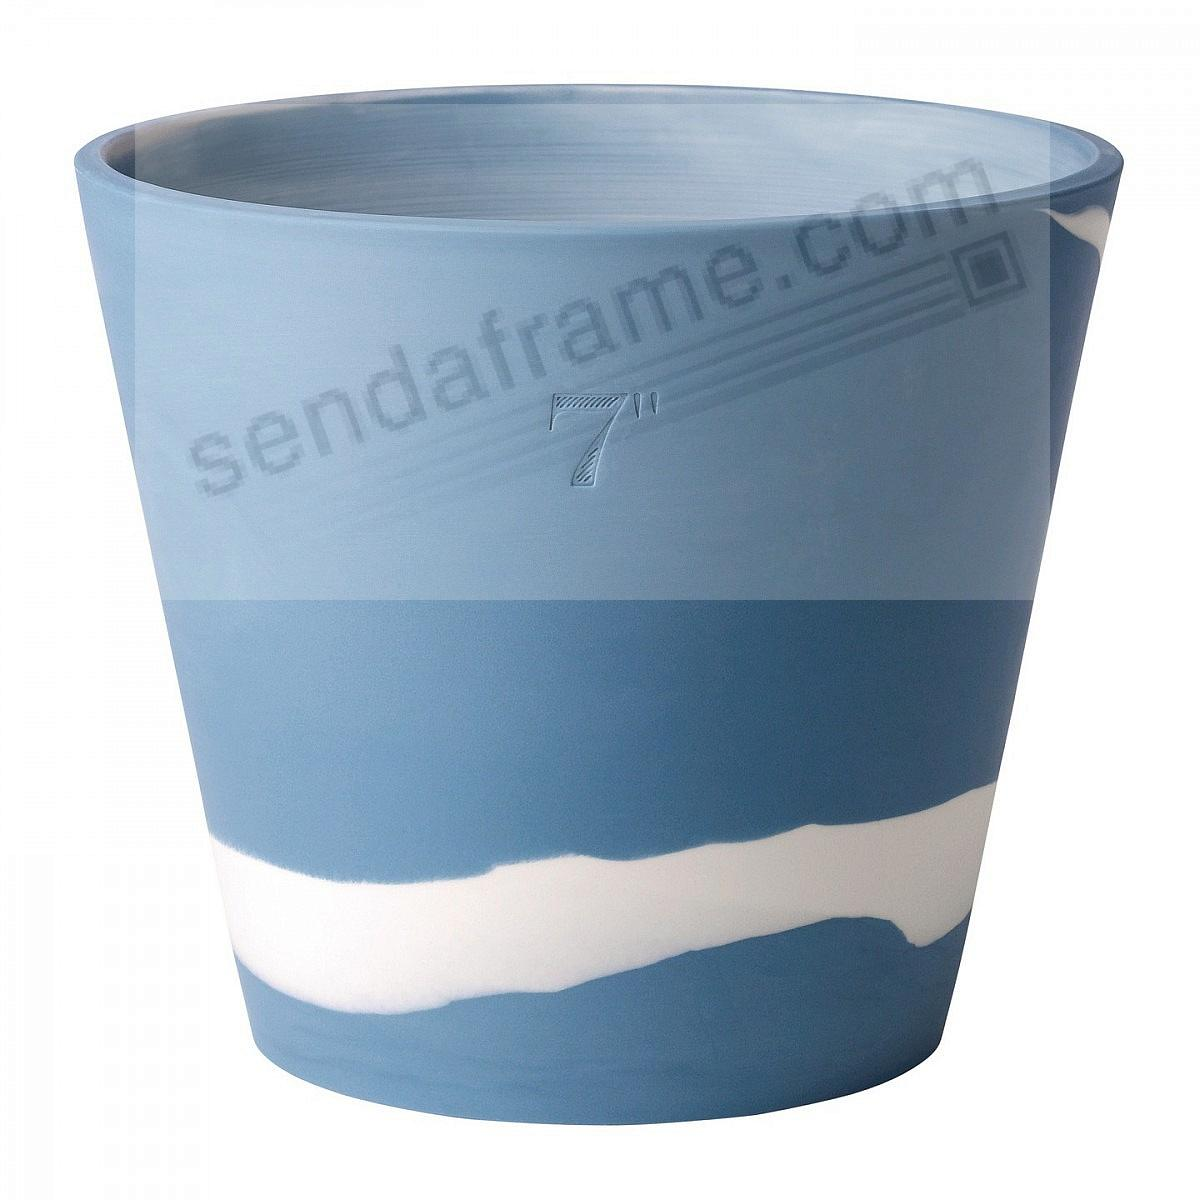 BURLINGTON PLANTER POT Blue+White 7in by Wedgwood®